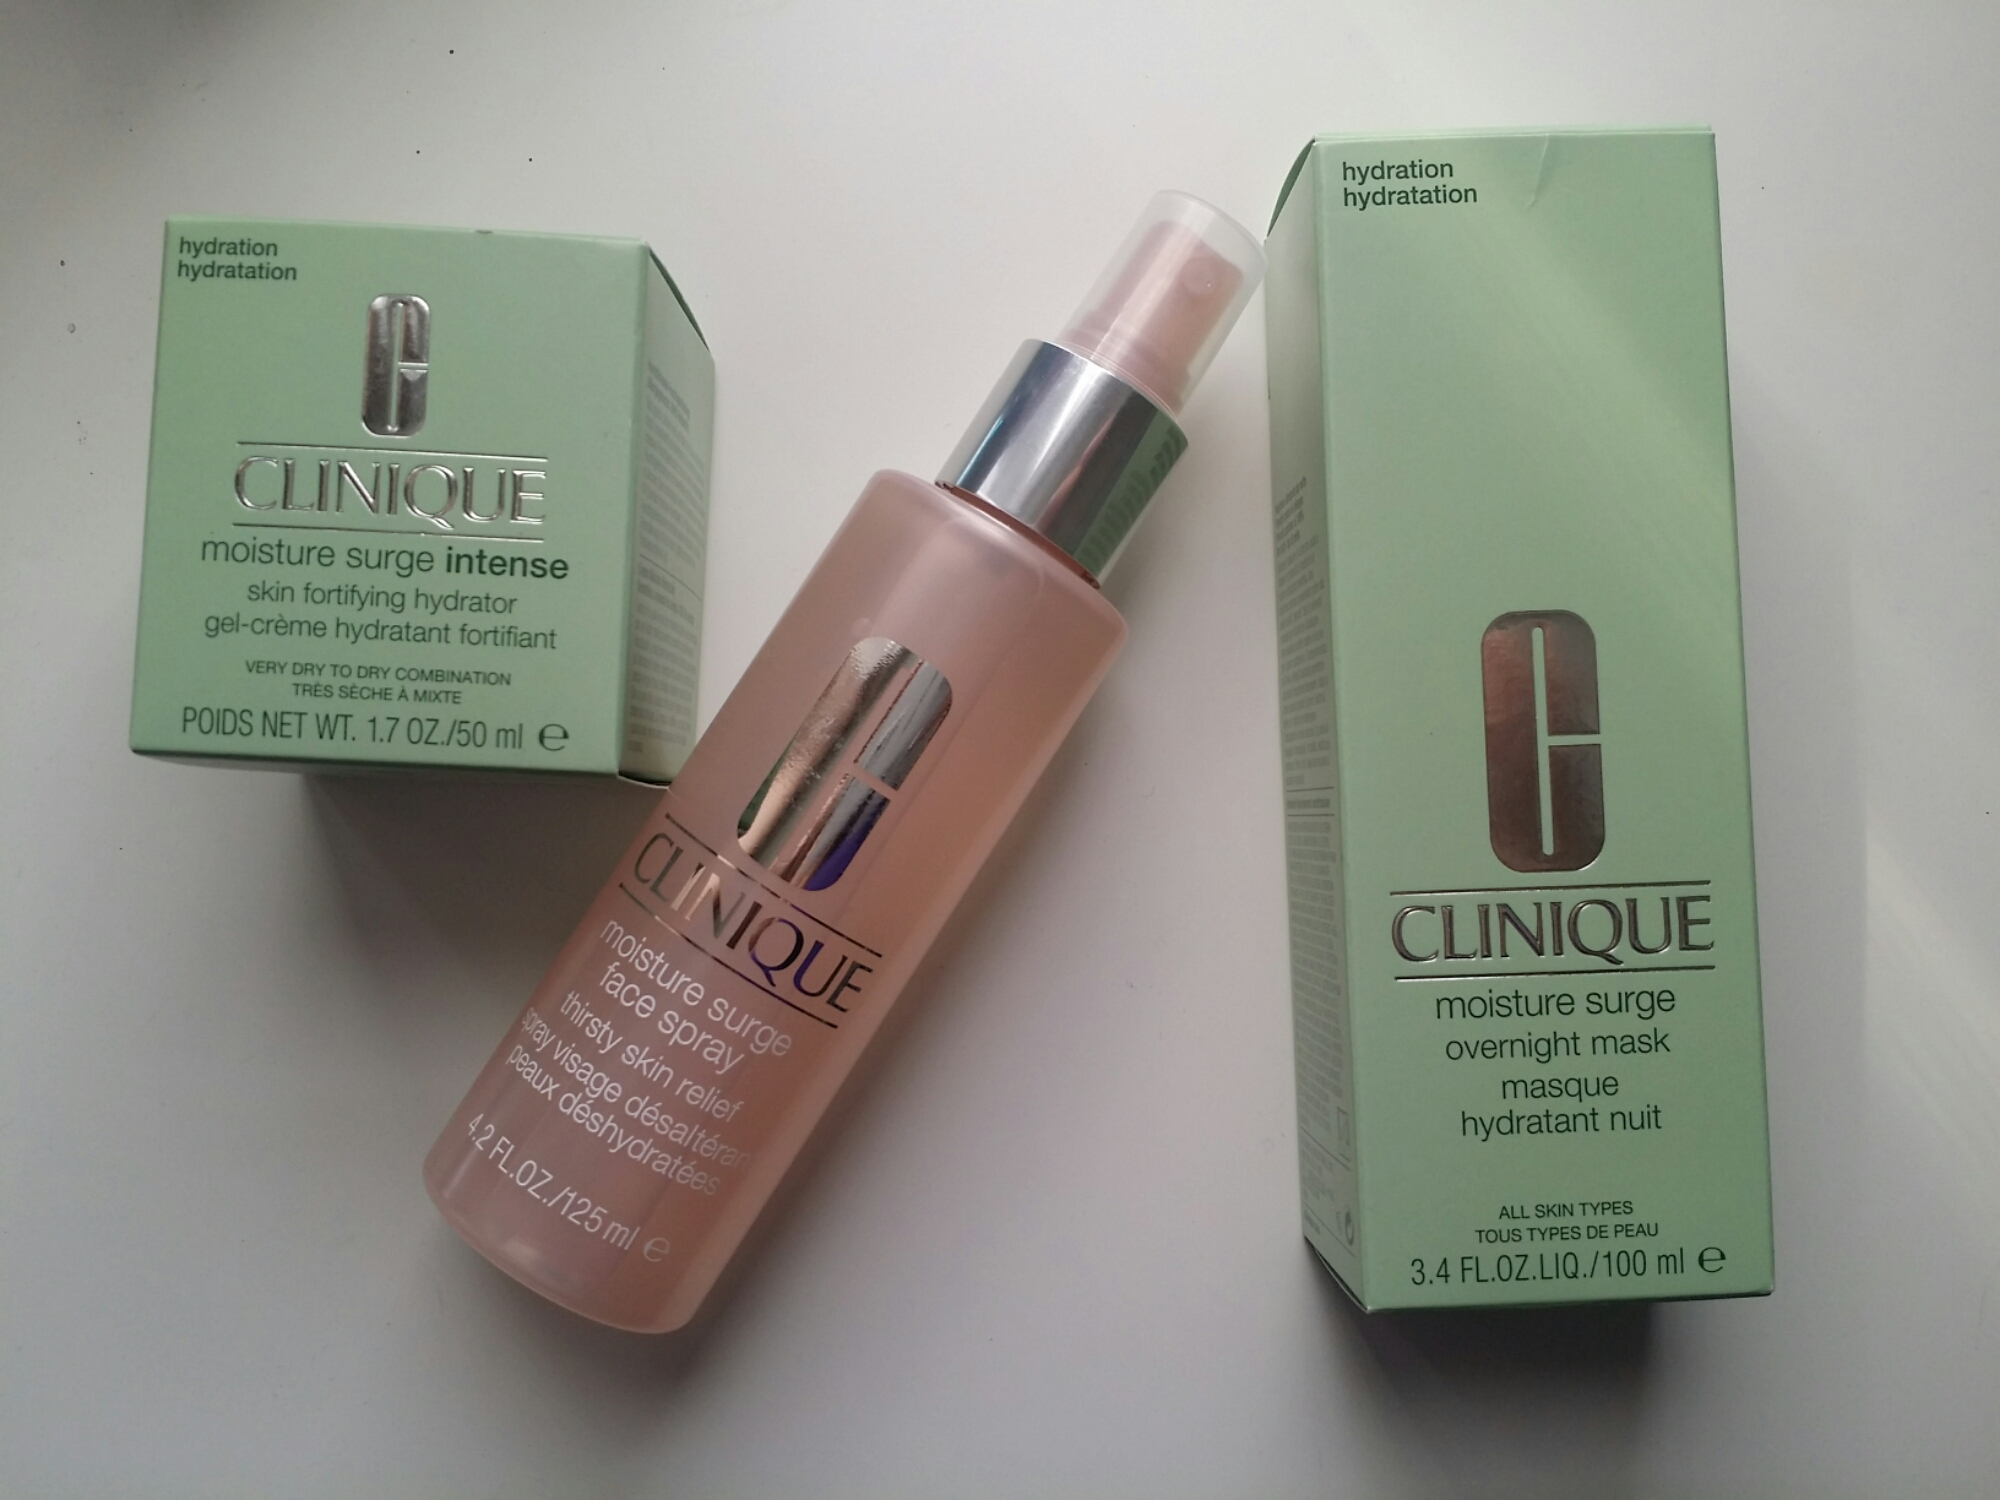 MY FIRST CLINIQUE EXPERIENCE